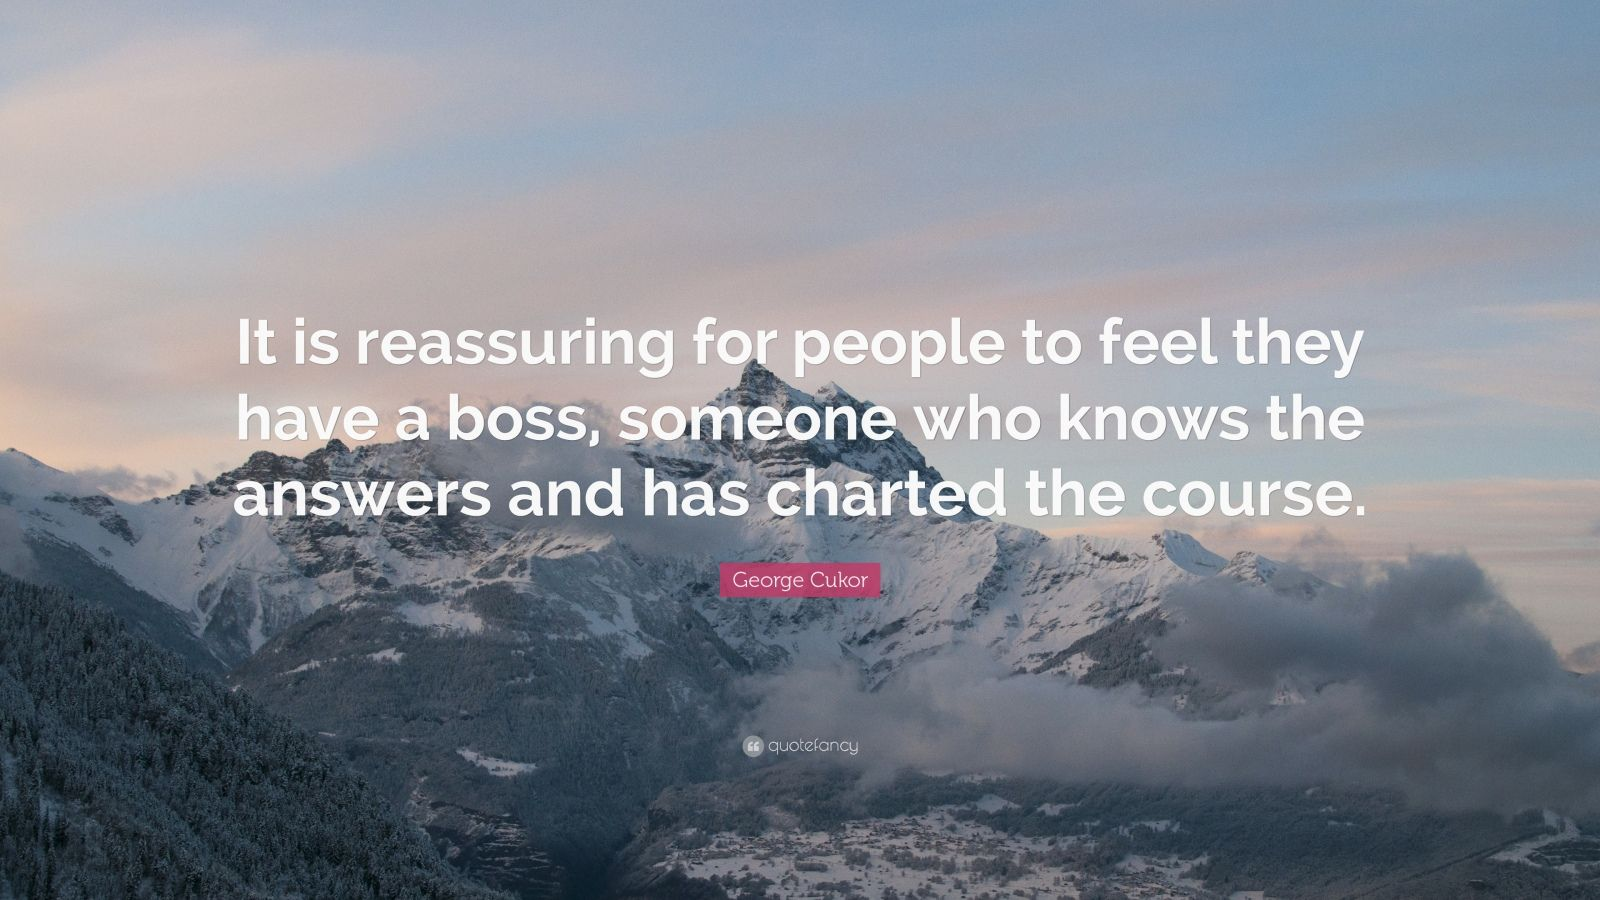 """George Cukor Quote: """"It is reassuring for people to feel they have a boss, someone who knows the answers and has charted the course."""""""